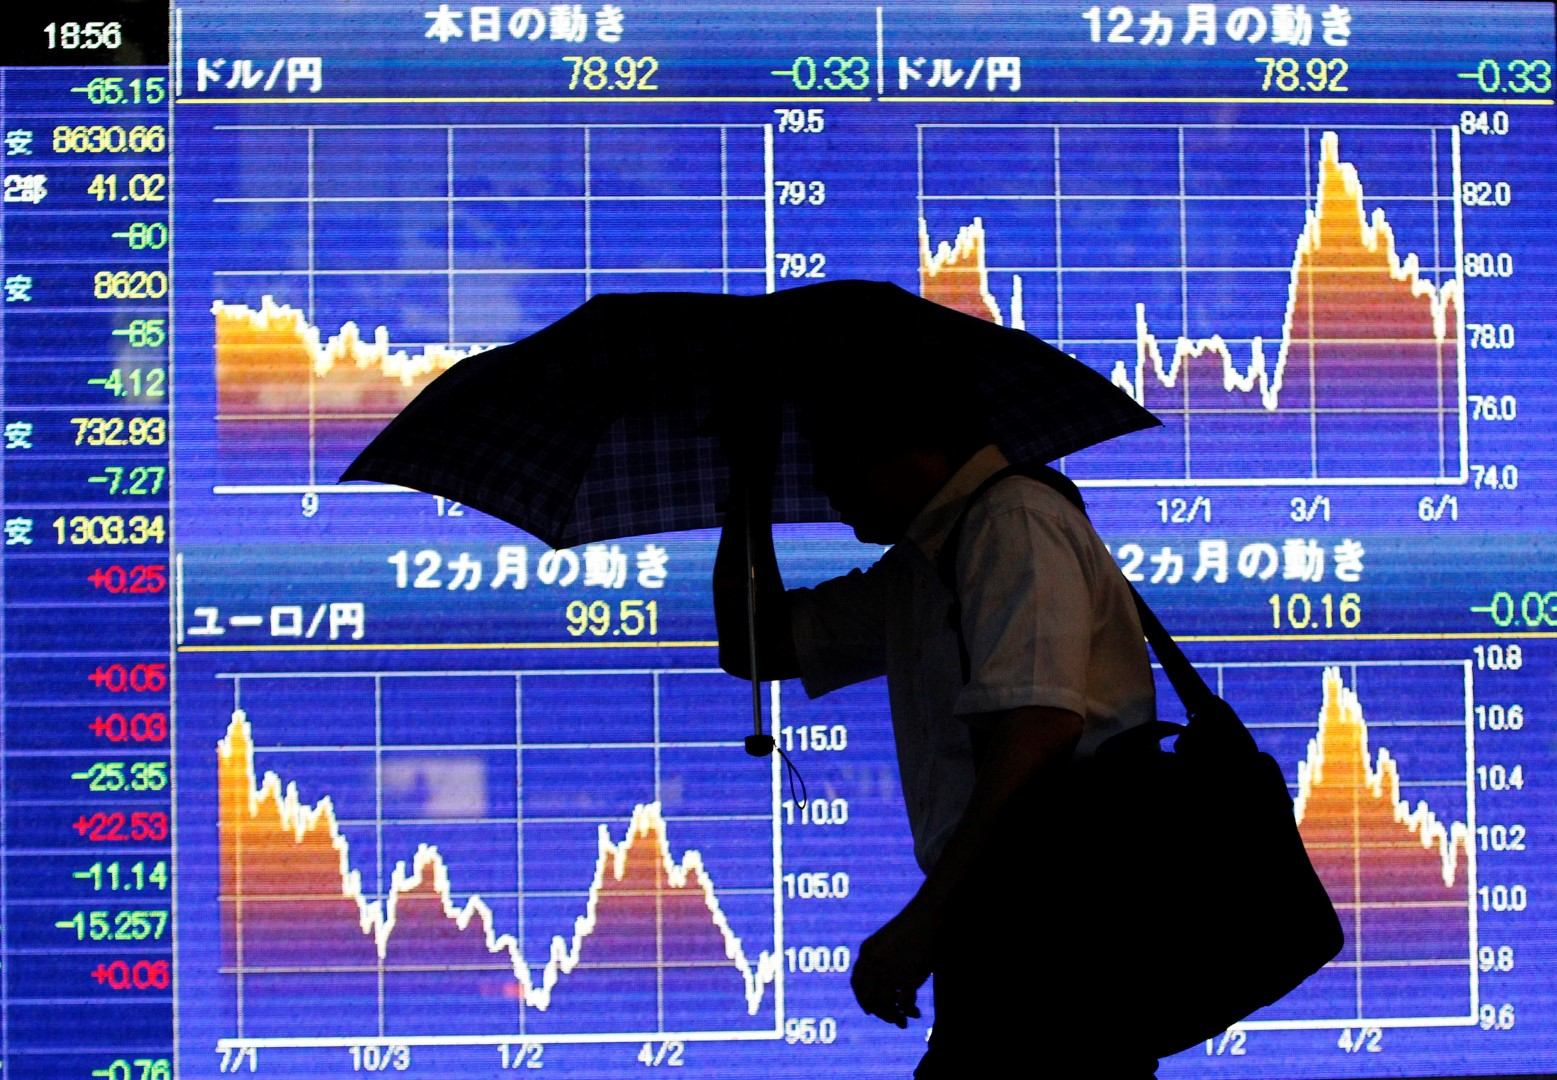 A man with an umbrella struggles against heavy rain and wind caused by Typhoon Guchol in front of a board showing the graph of the change of the exchange rate between the foreign currencies and Japanese Yen for the last 12 months outside a brokerage in Tokyo June 19, 2012.  REUTERS/Issei Kato (JAPAN - Tags: BUSINESS ENVIRONMENT) - RTR33UXT